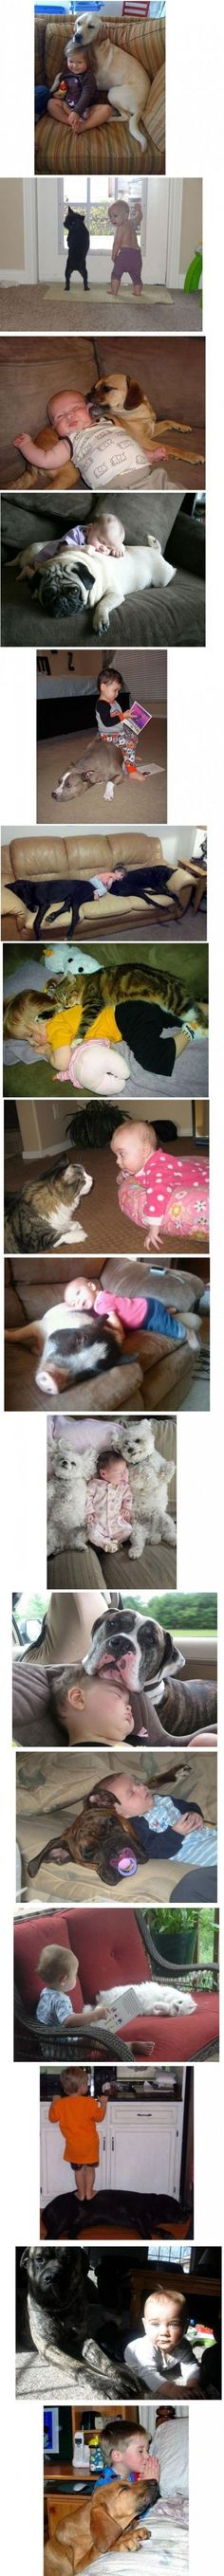 Why kids and their pets are such good friends - Mommy Has A Potty Mouth